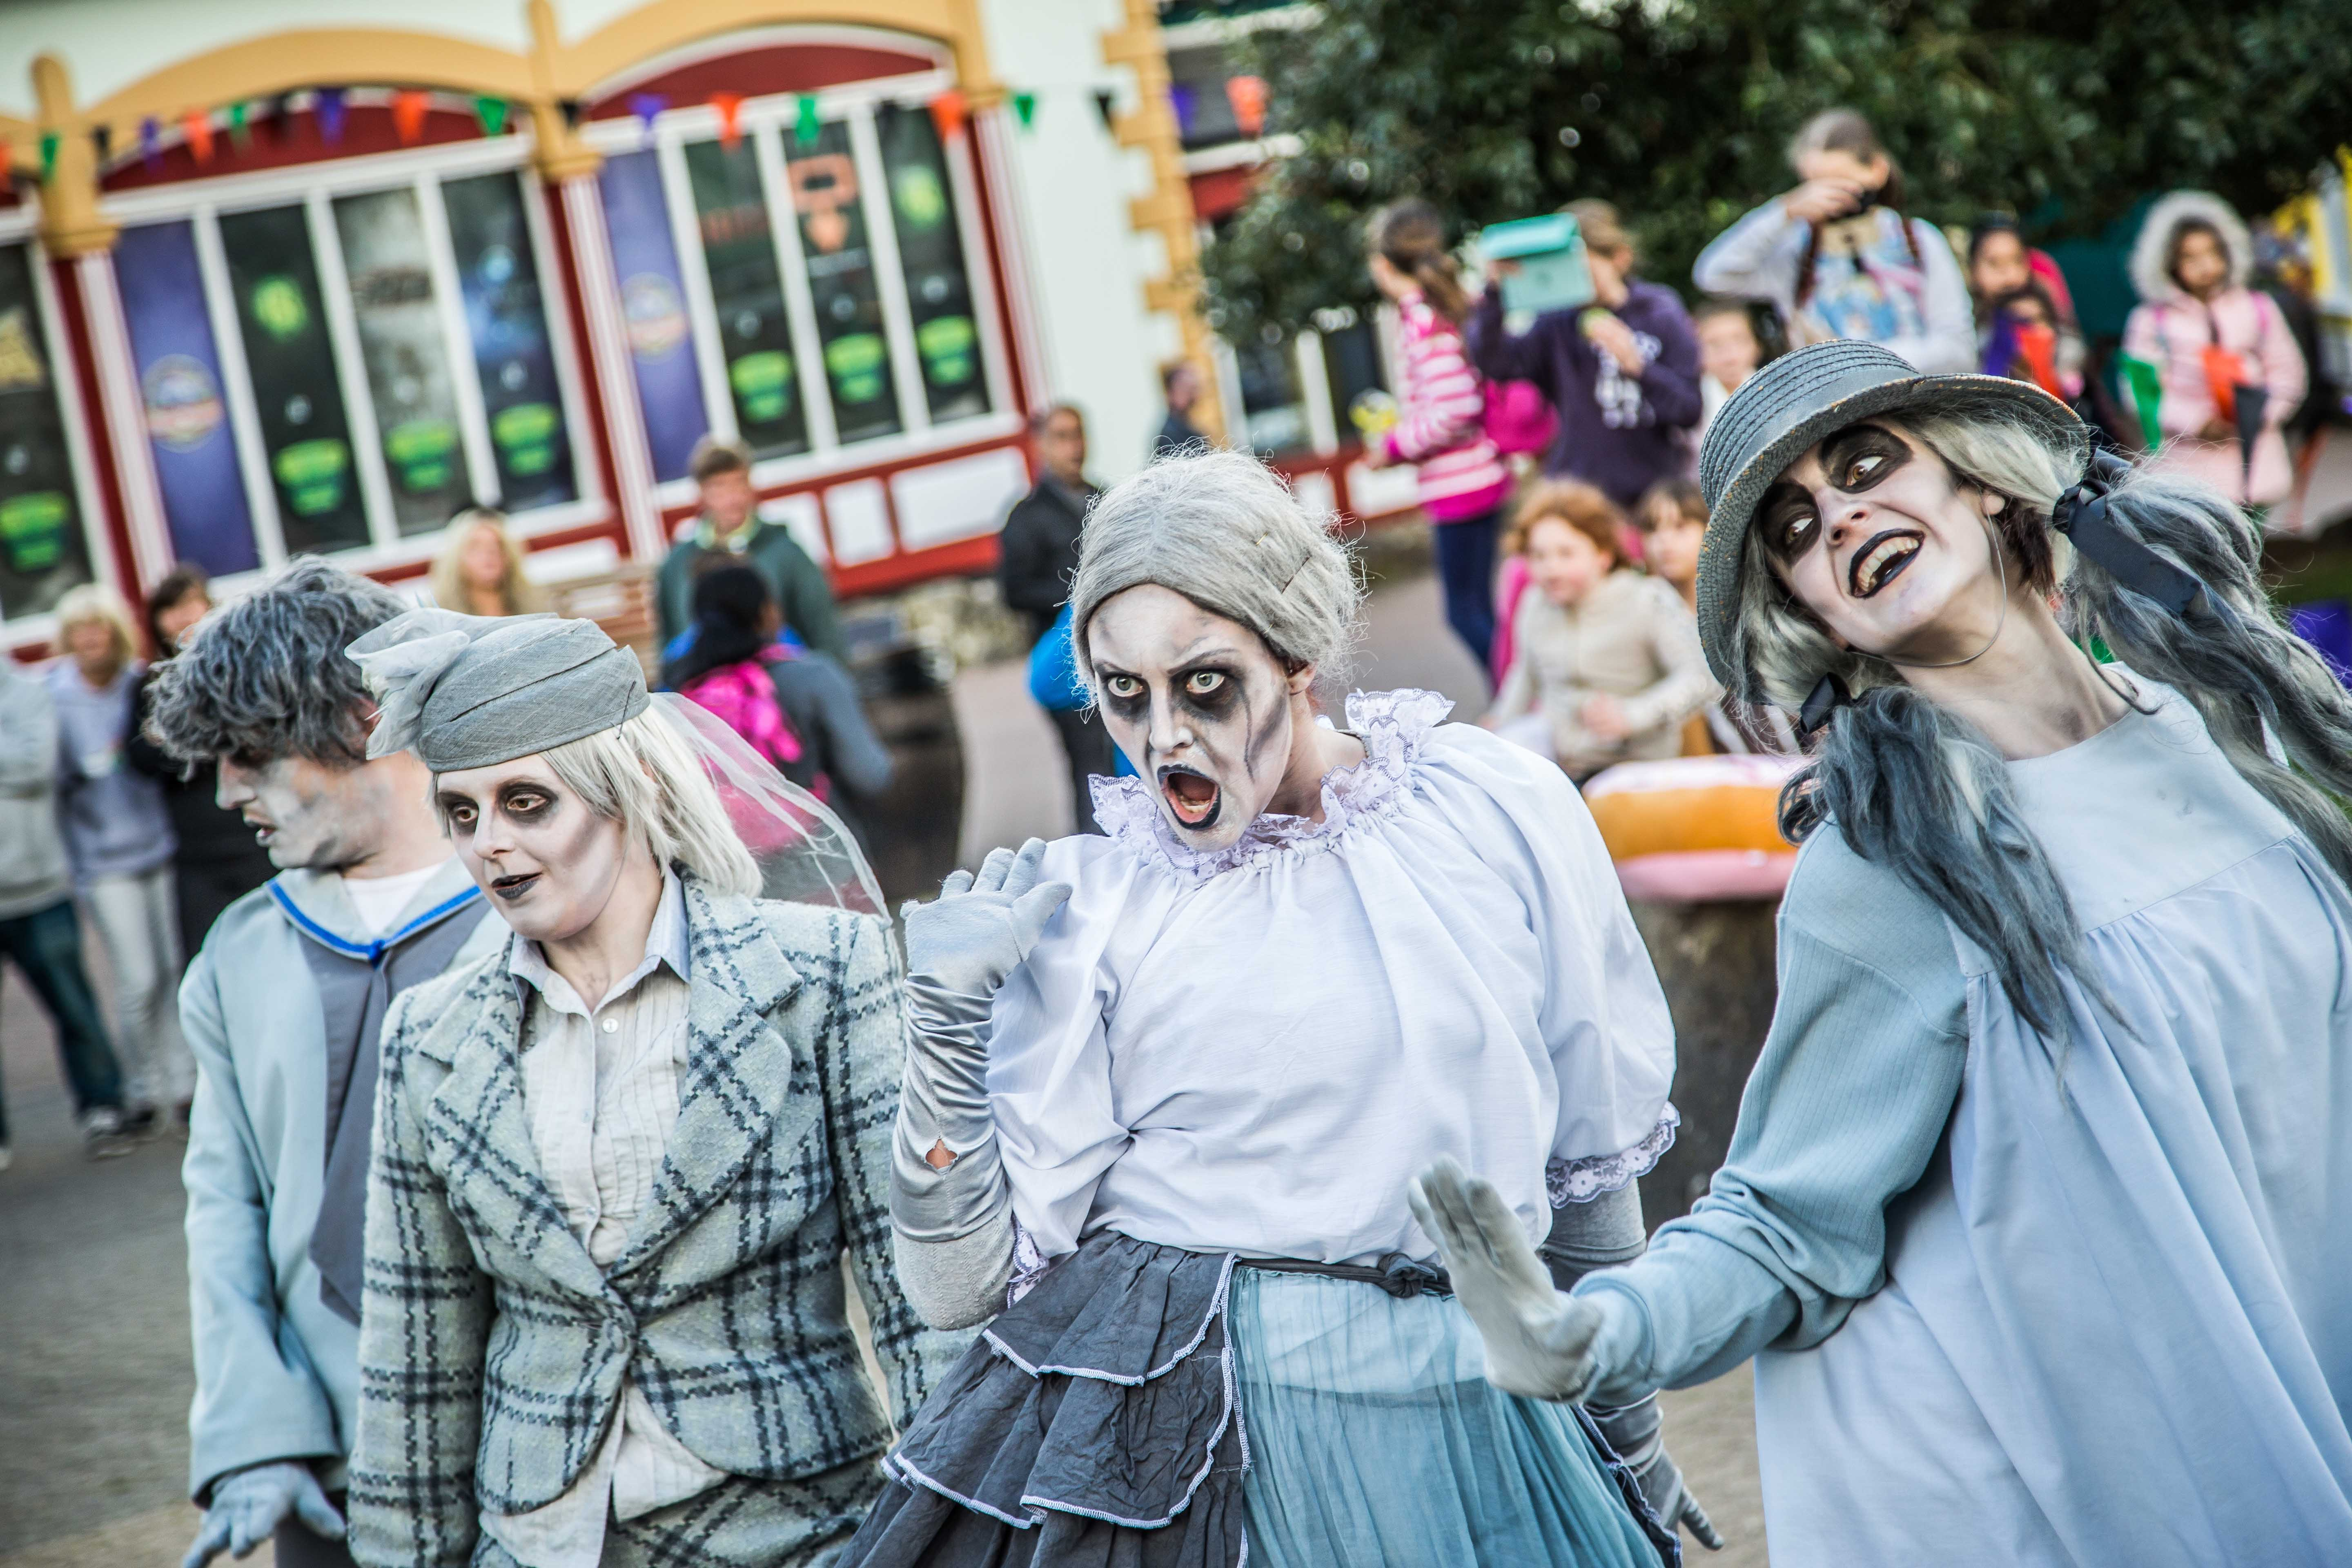 The Alton Ancestors are back for Alton Towers Scarefest 2018